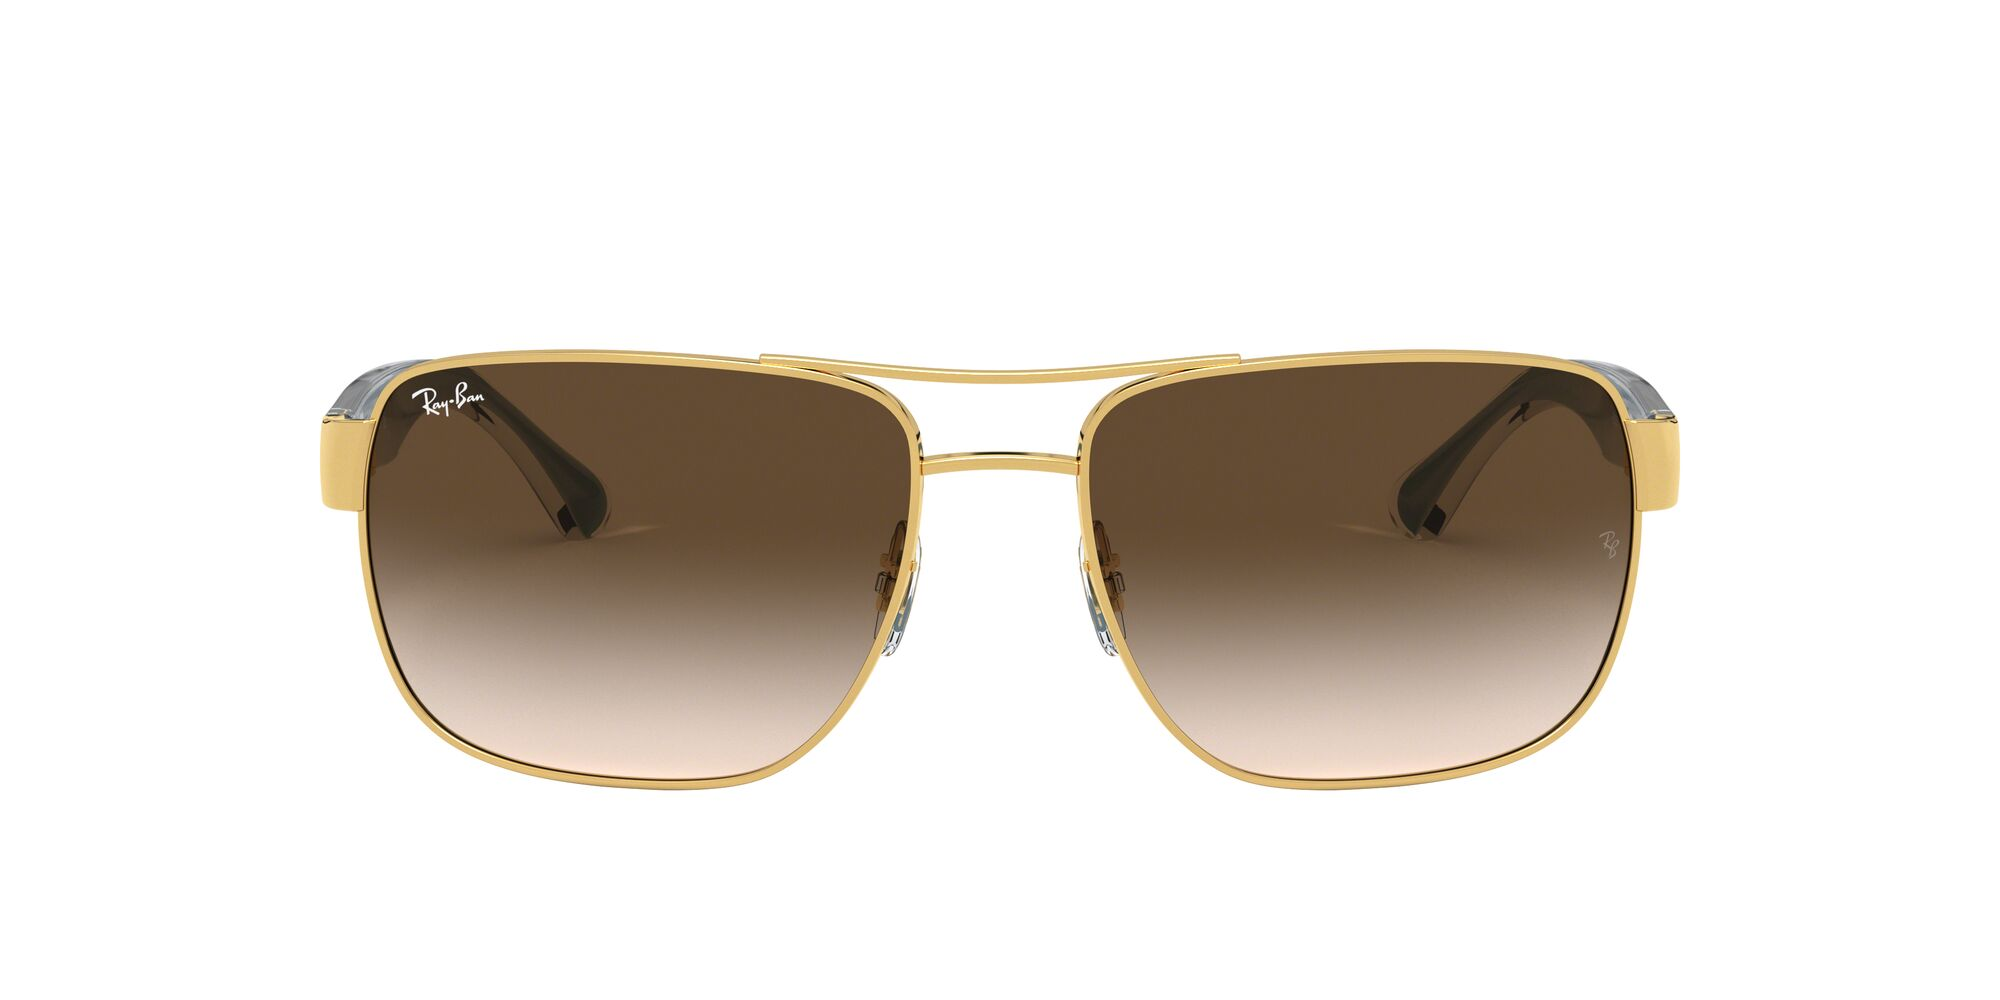 Front Ray-Ban Ray-Ban 0RB3530 001/13 58/17 Goud/Bruin